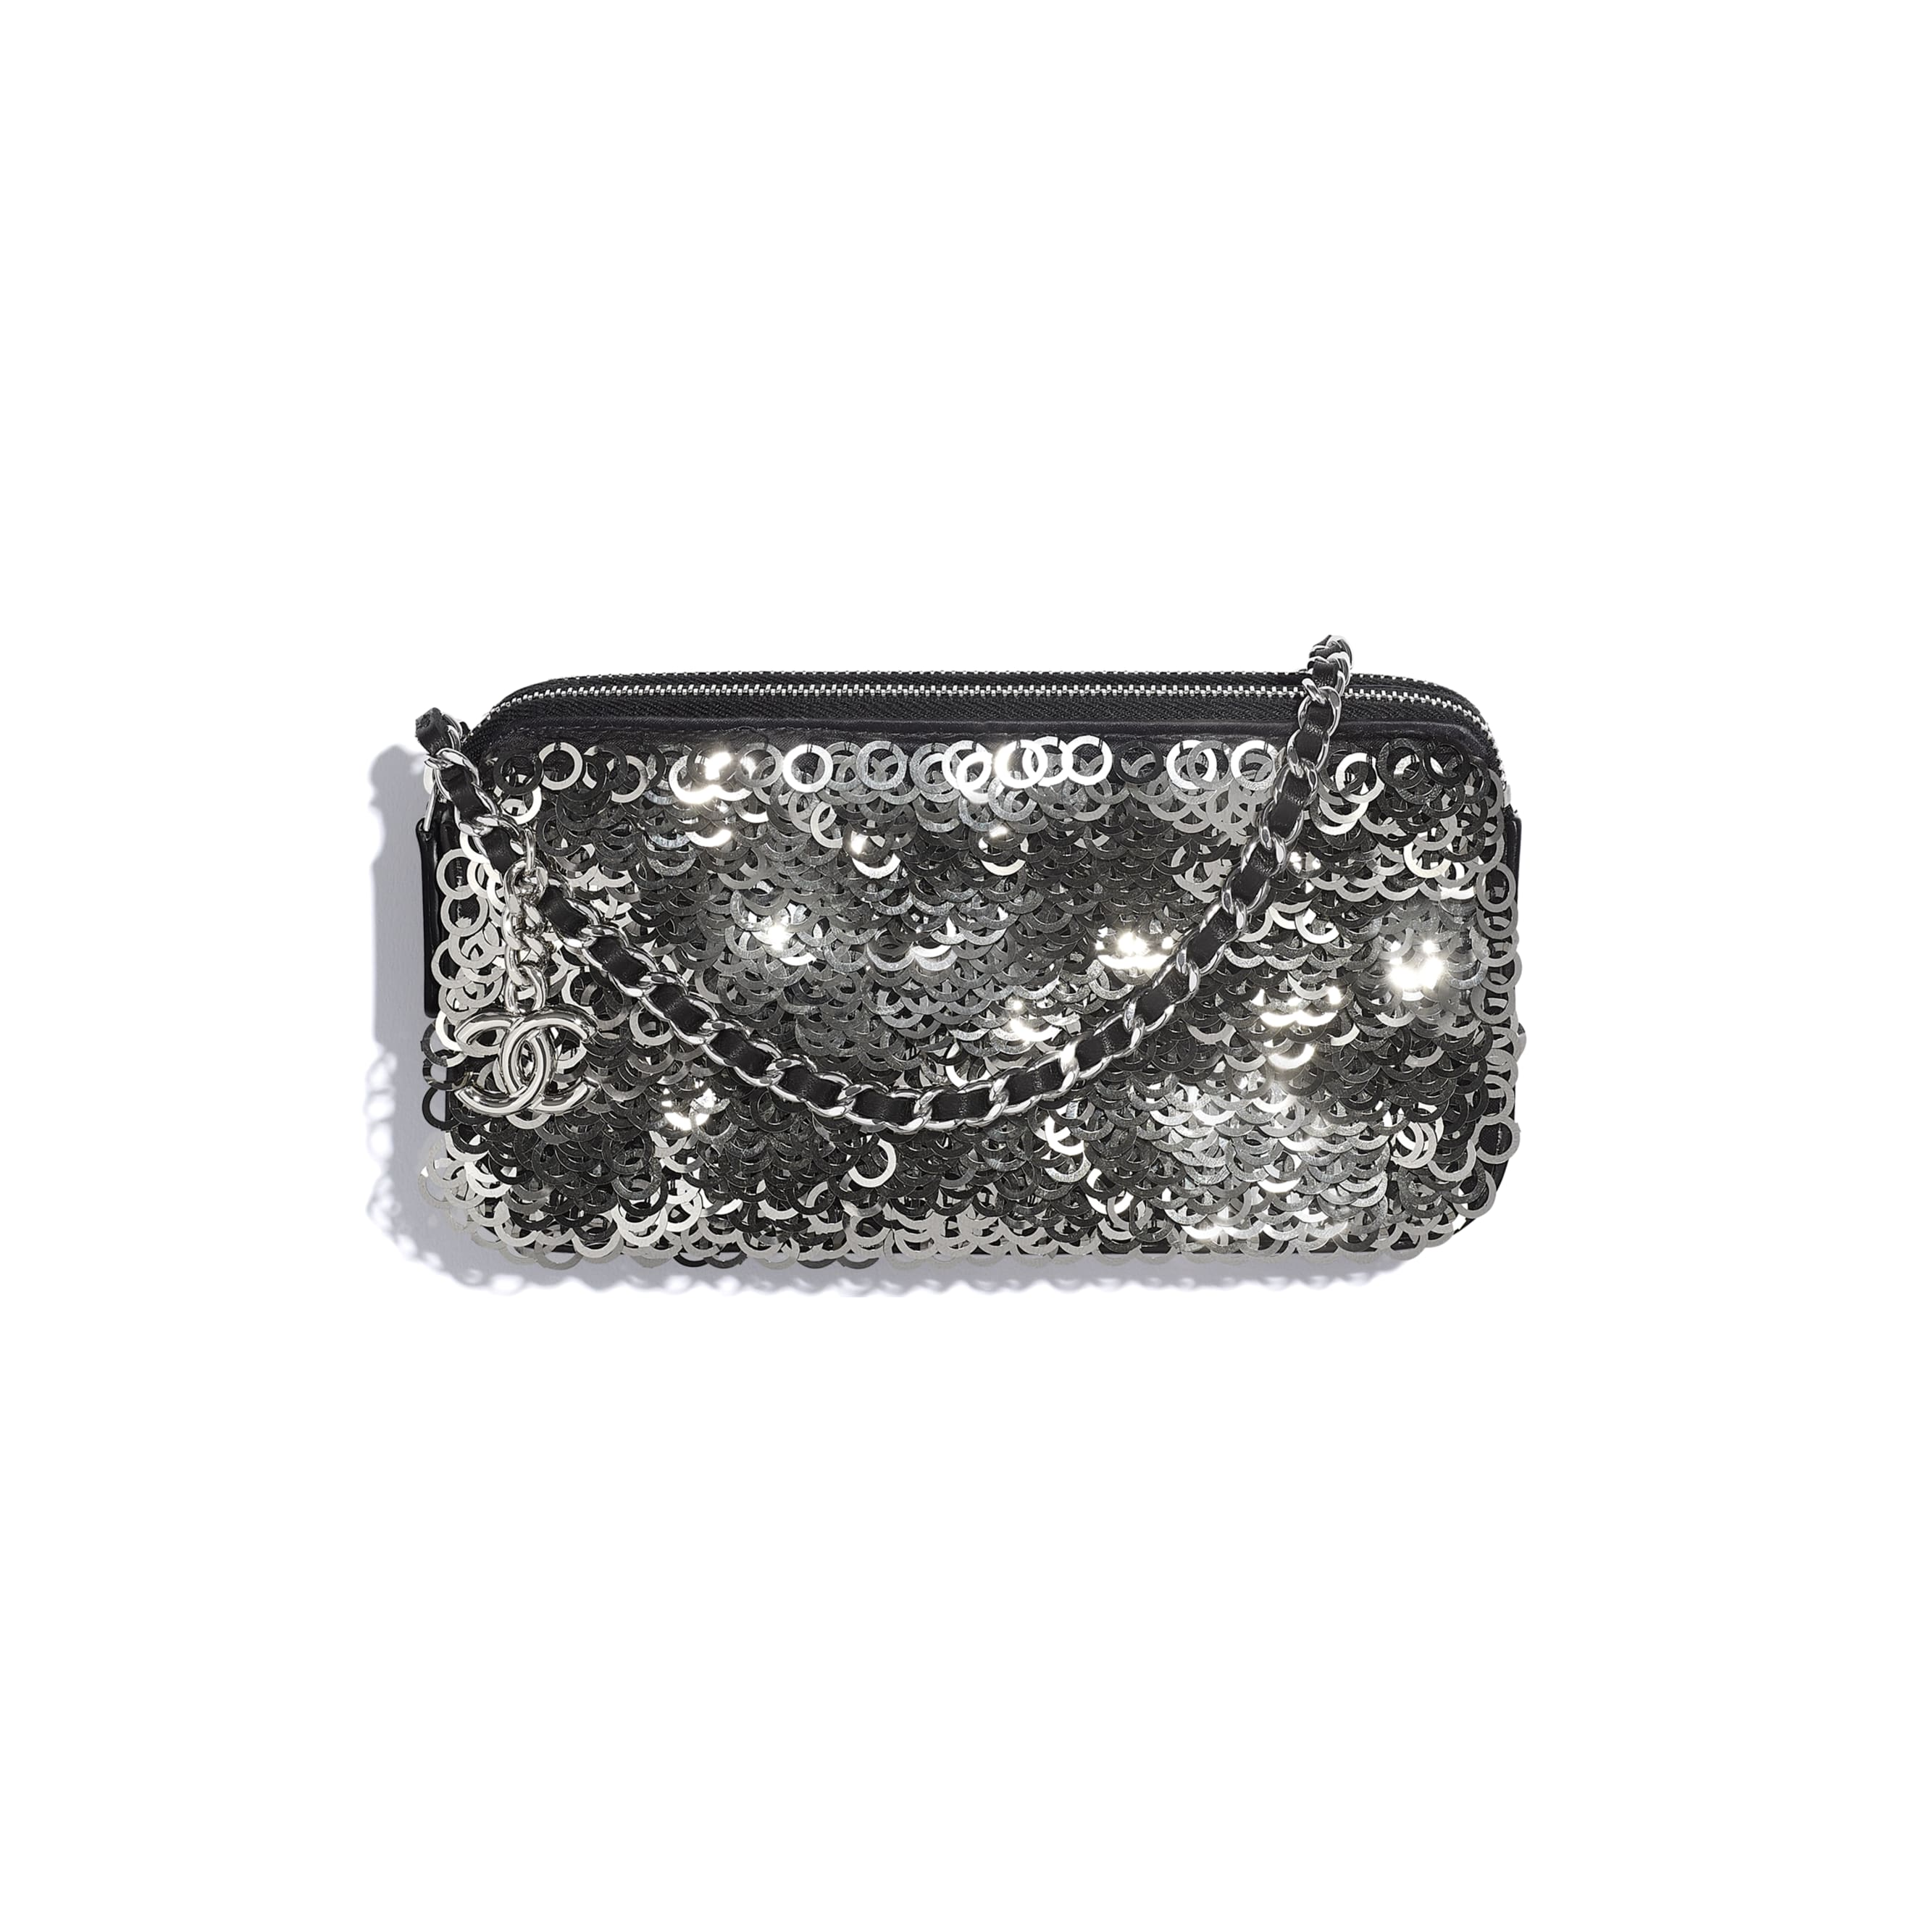 Clutch with Chain - Black, Silver & White - Lambskin, Sequins & Silver-Tone Metal - CHANEL - Default view - see standard sized version